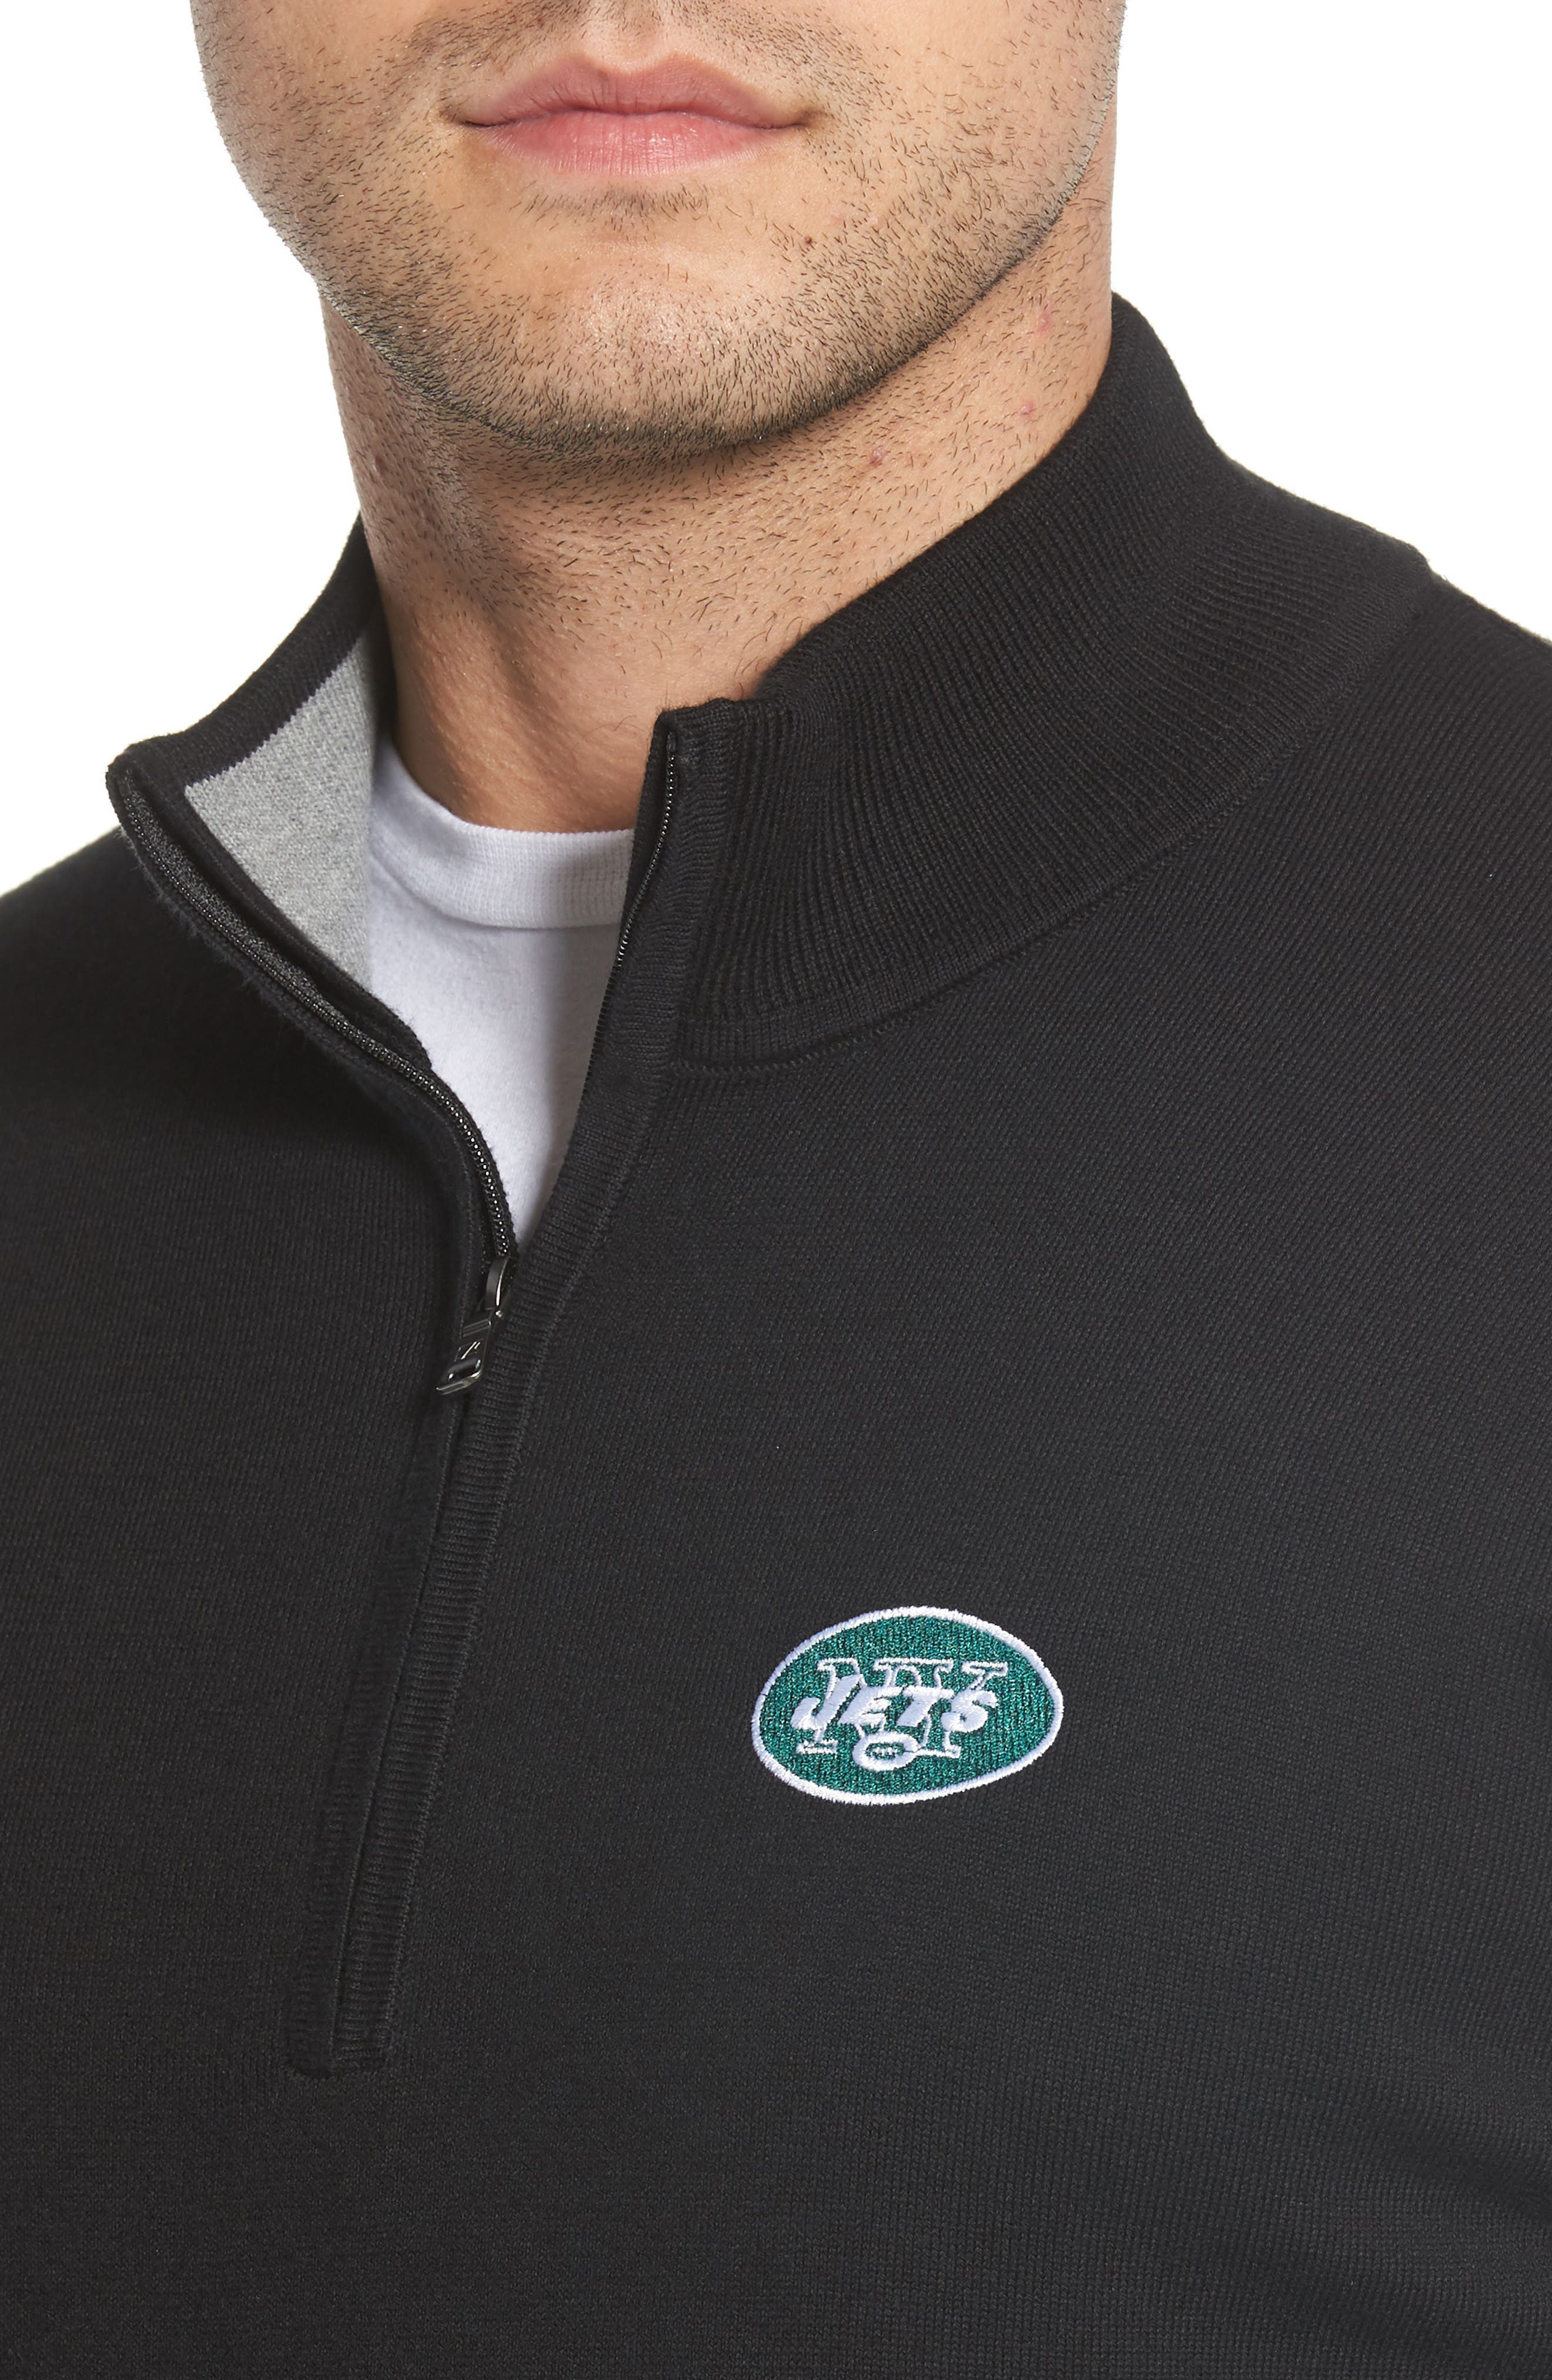 New York Jets - Lakemont Regular Fit Quarter Zip Sweater,                             Alternate thumbnail 4, color,                             BLACK